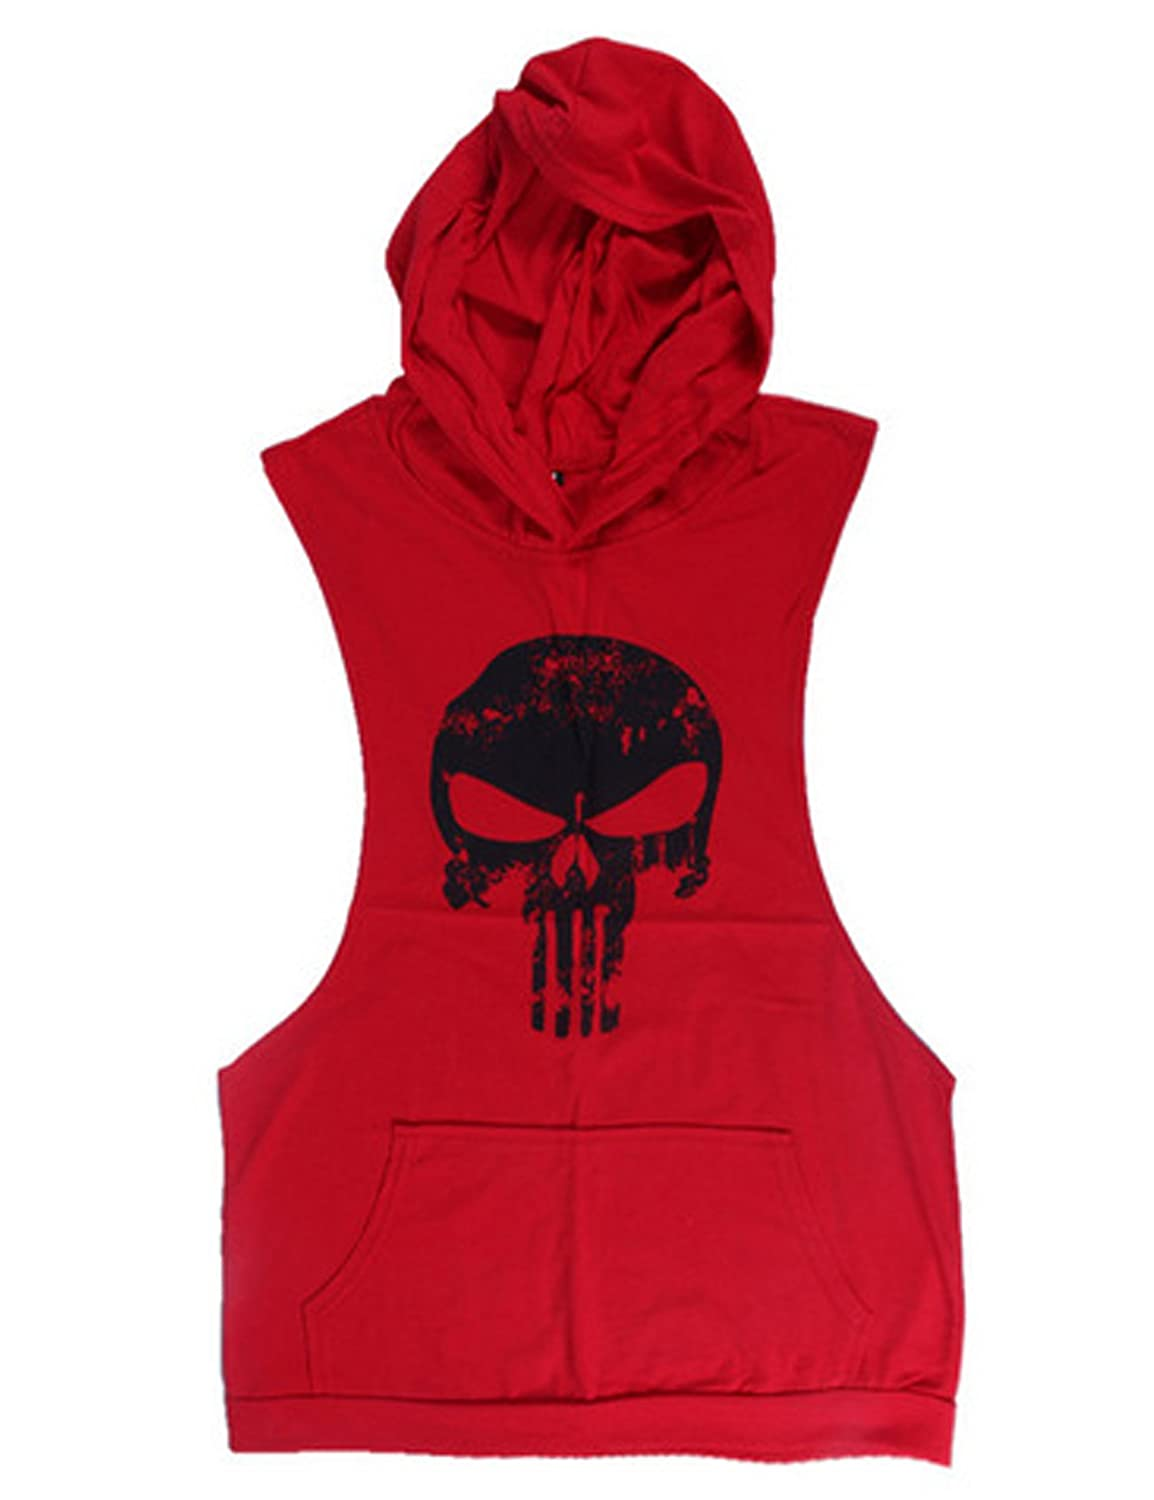 Bestgift Men's Skull Printed Sleeveless Cotton Hooded Tank Top BSGFNC0239